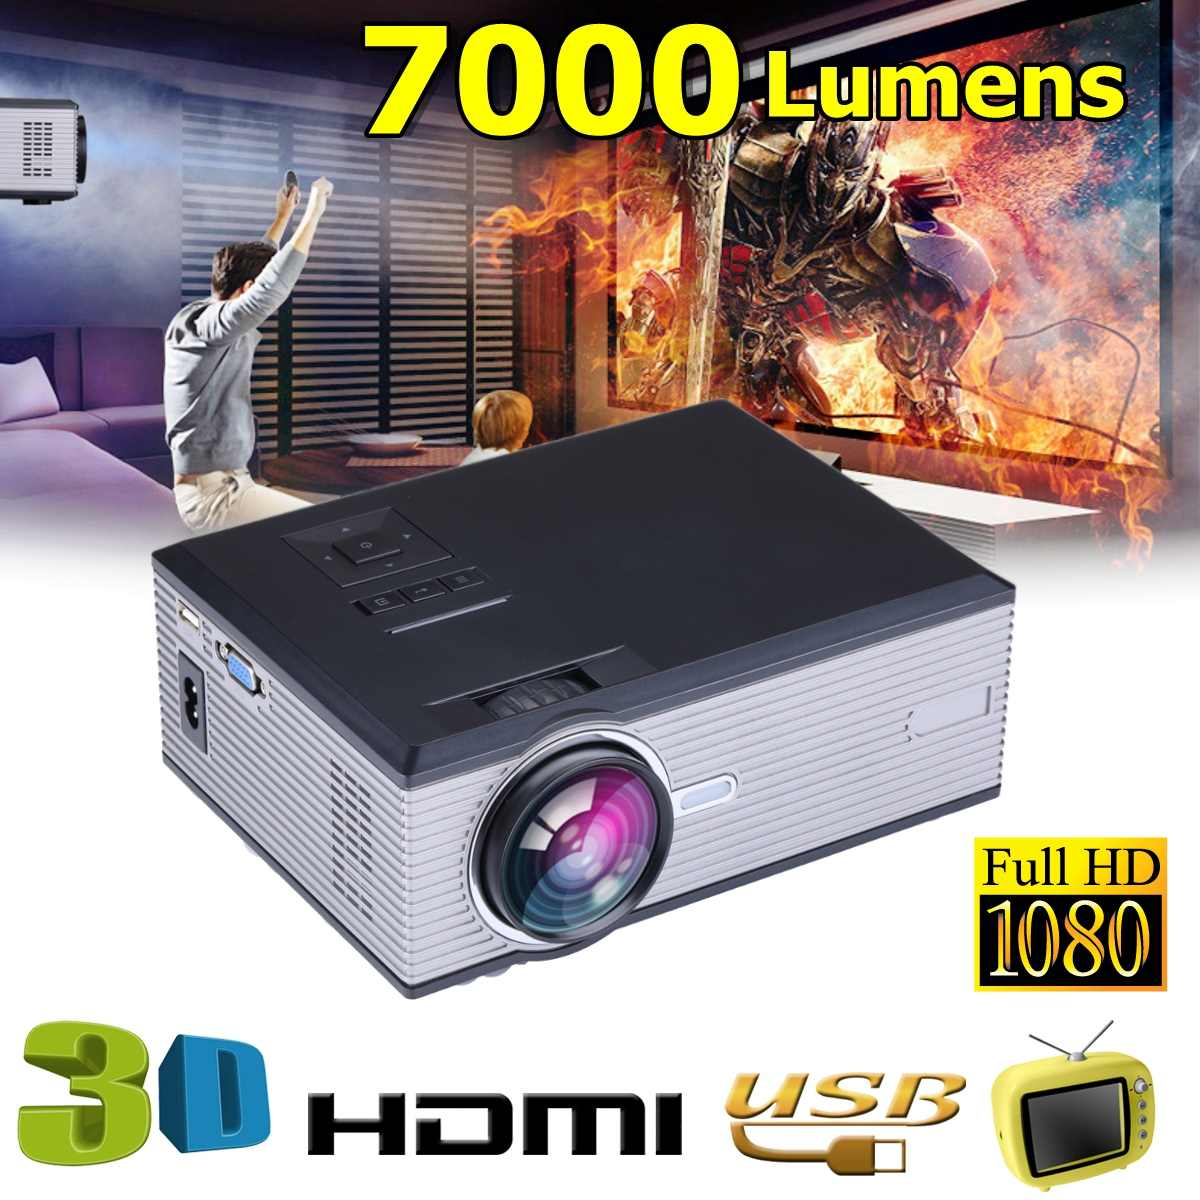 1080P LED Video Projector for Home Theater7000Lumensupport Full HD Mini projector HDMI/USB/SD/AV/VGA HOME CINEMA1080P LED Video Projector for Home Theater7000Lumensupport Full HD Mini projector HDMI/USB/SD/AV/VGA HOME CINEMA